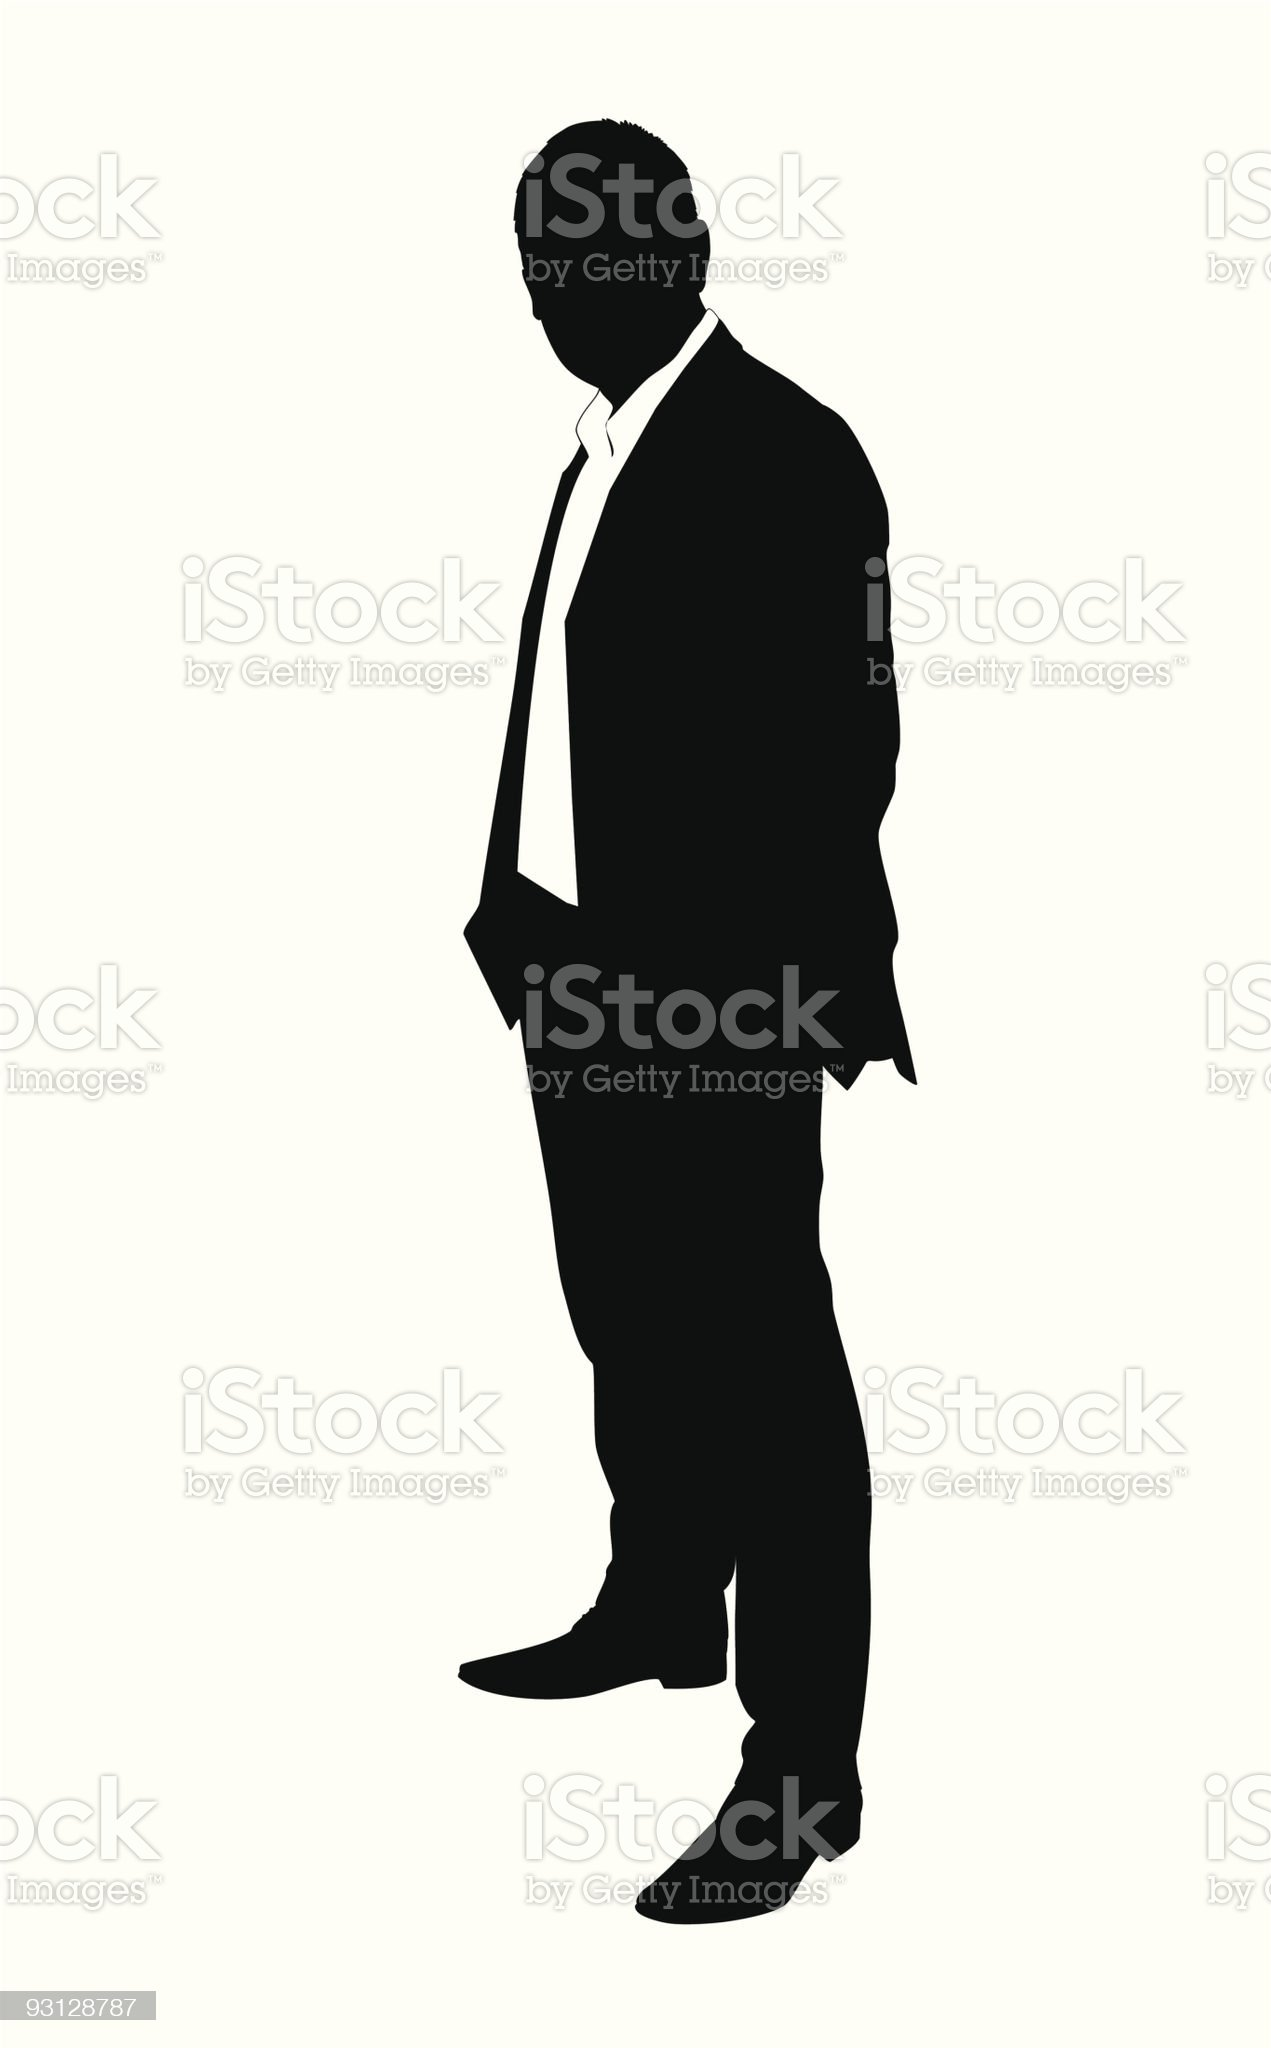 businessmen royalty-free stock vector art